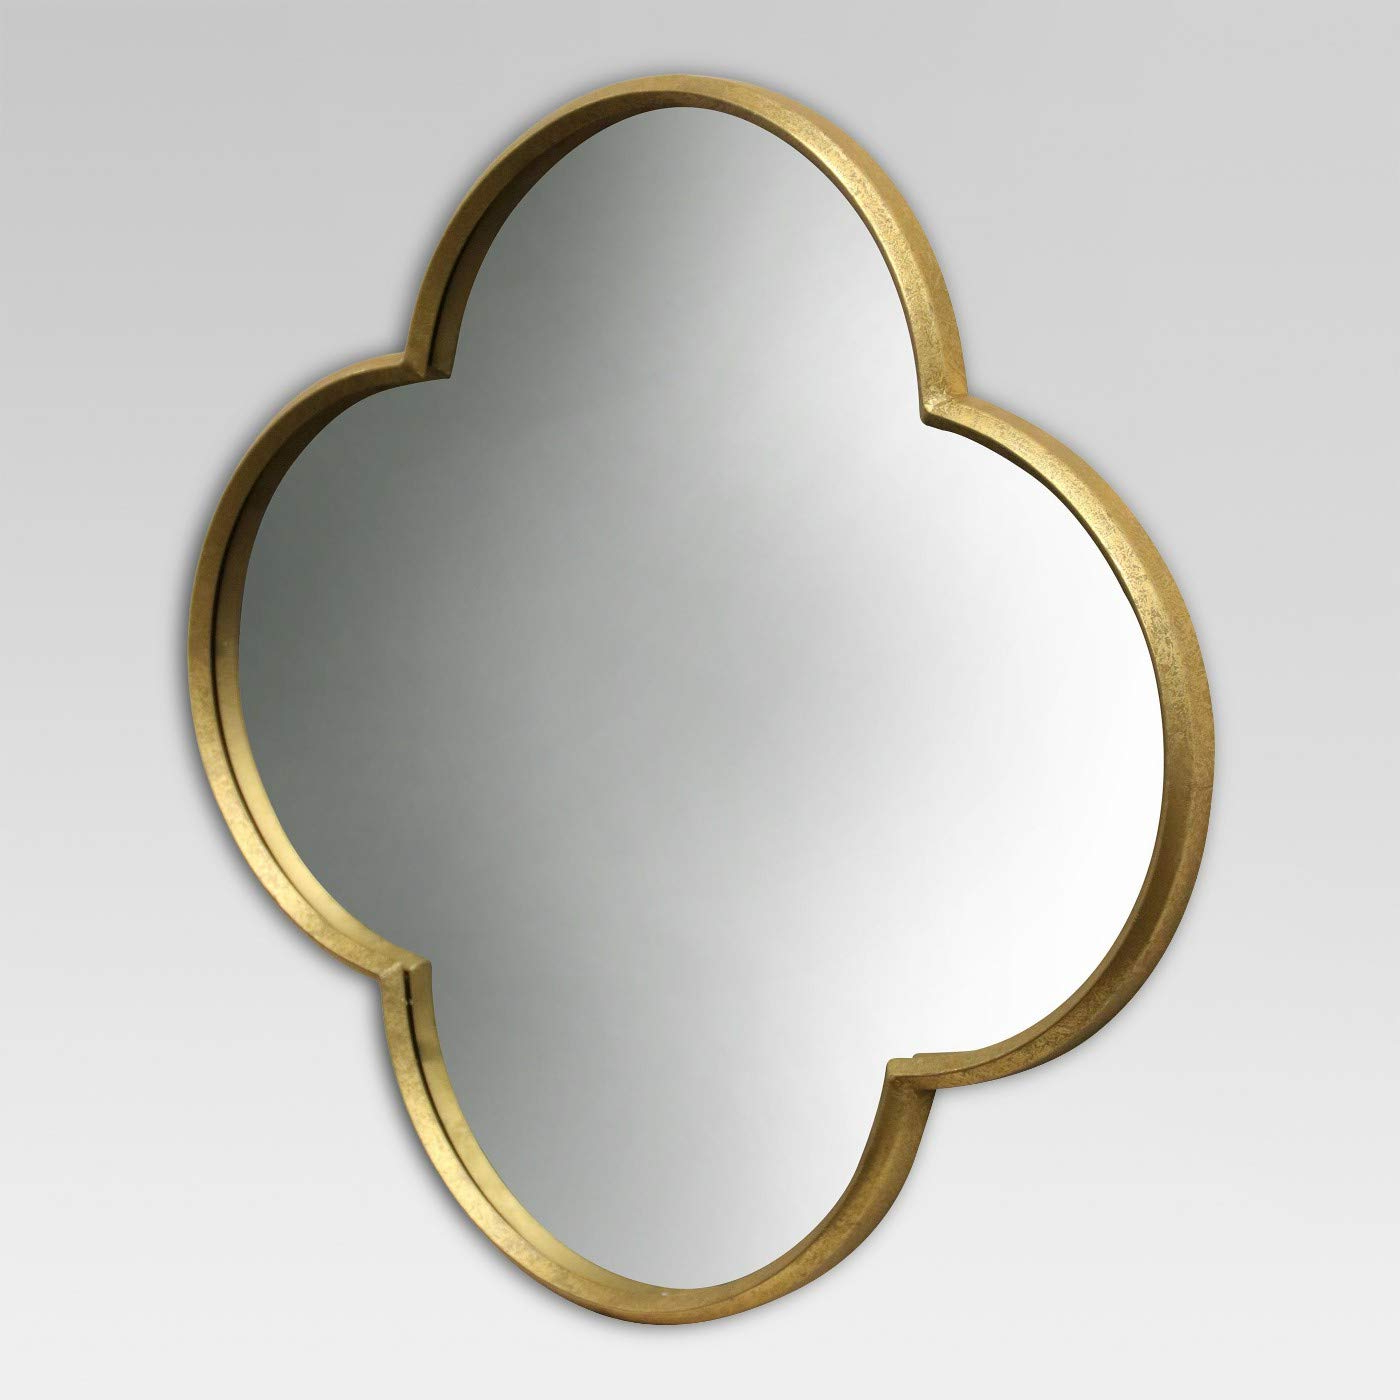 Most Current Quatrefoil Wall Mirrors For Amazon: Quatrefoil Decorative Wall Mirror Gold Finish (View 19 of 20)